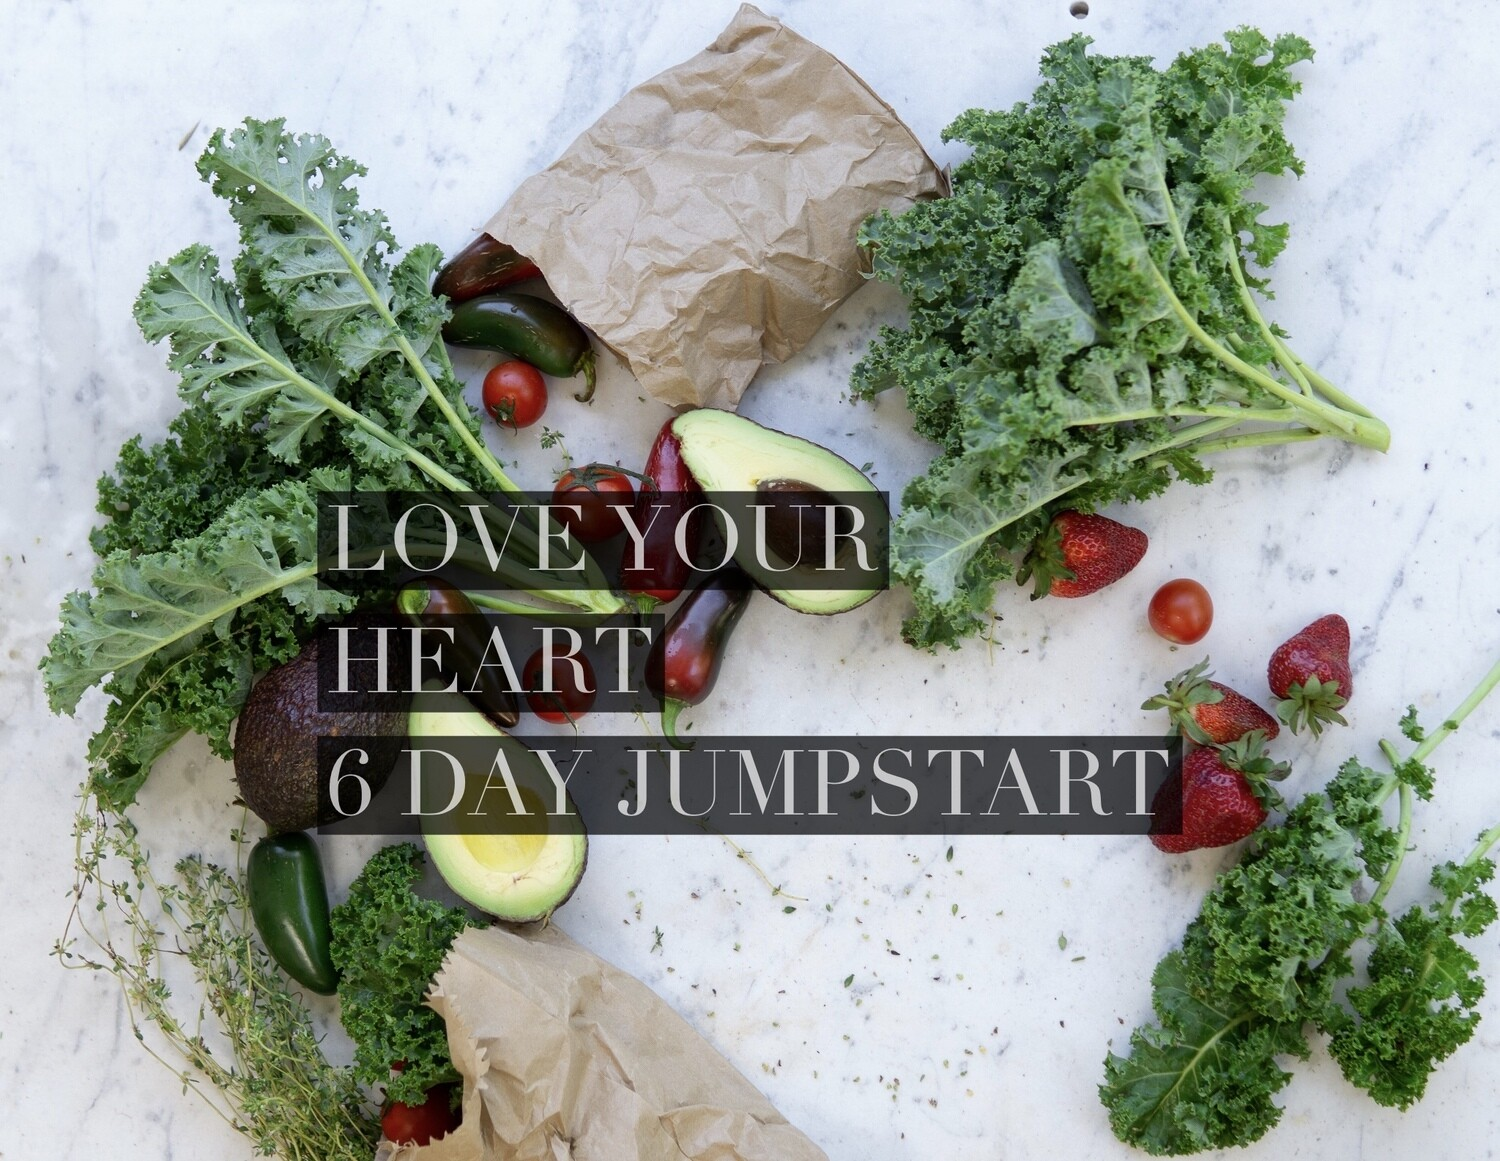 Love Your Heart 6 Day Jumpstart with Free Ebook